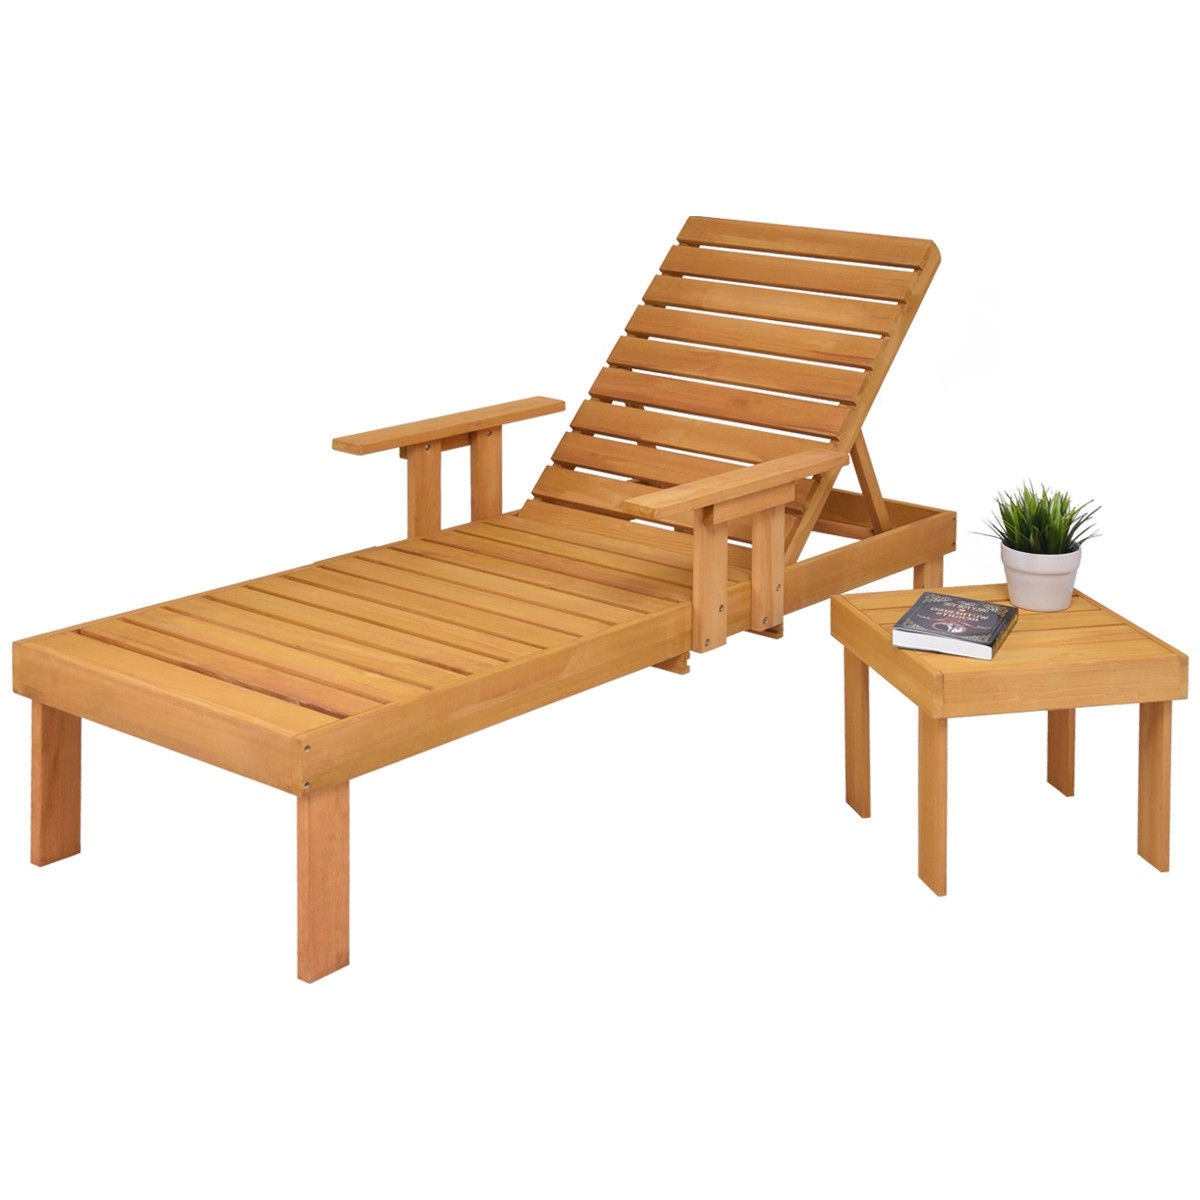 Havenside Home Ormond Outdoor Hardwood Sun Loungers With Tray With Well Known Gymax Patio Chaise Wood Sun Lounger Bench Side Tray Side Beach Table Set – As Pic (View 13 of 25)